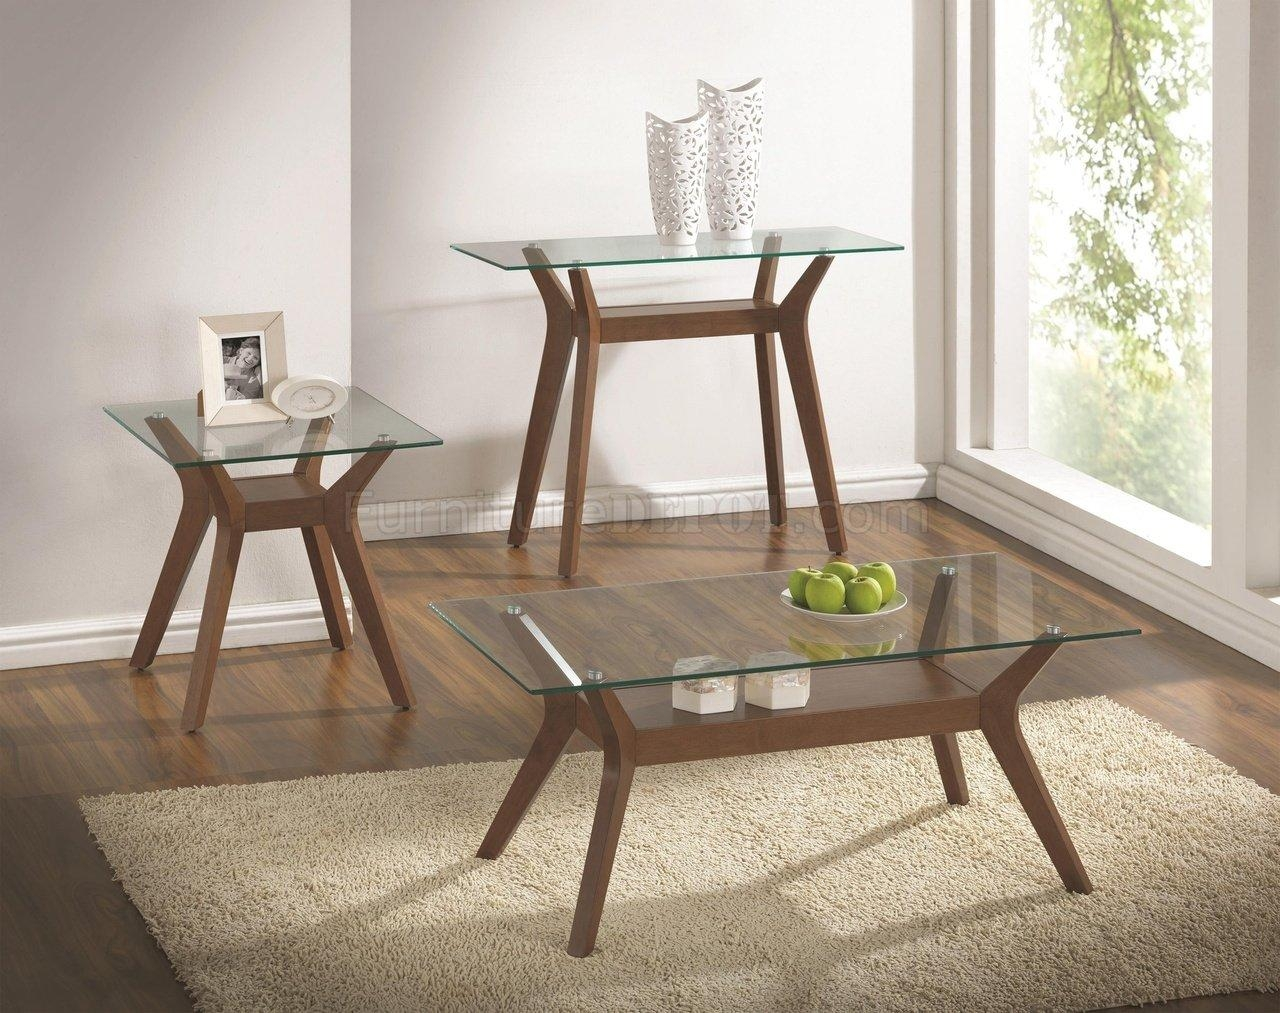 704168 3Pc Coffee Table Setcoaster W/optional Sofa Table Intended For Sofa Table With Chairs (Image 1 of 20)